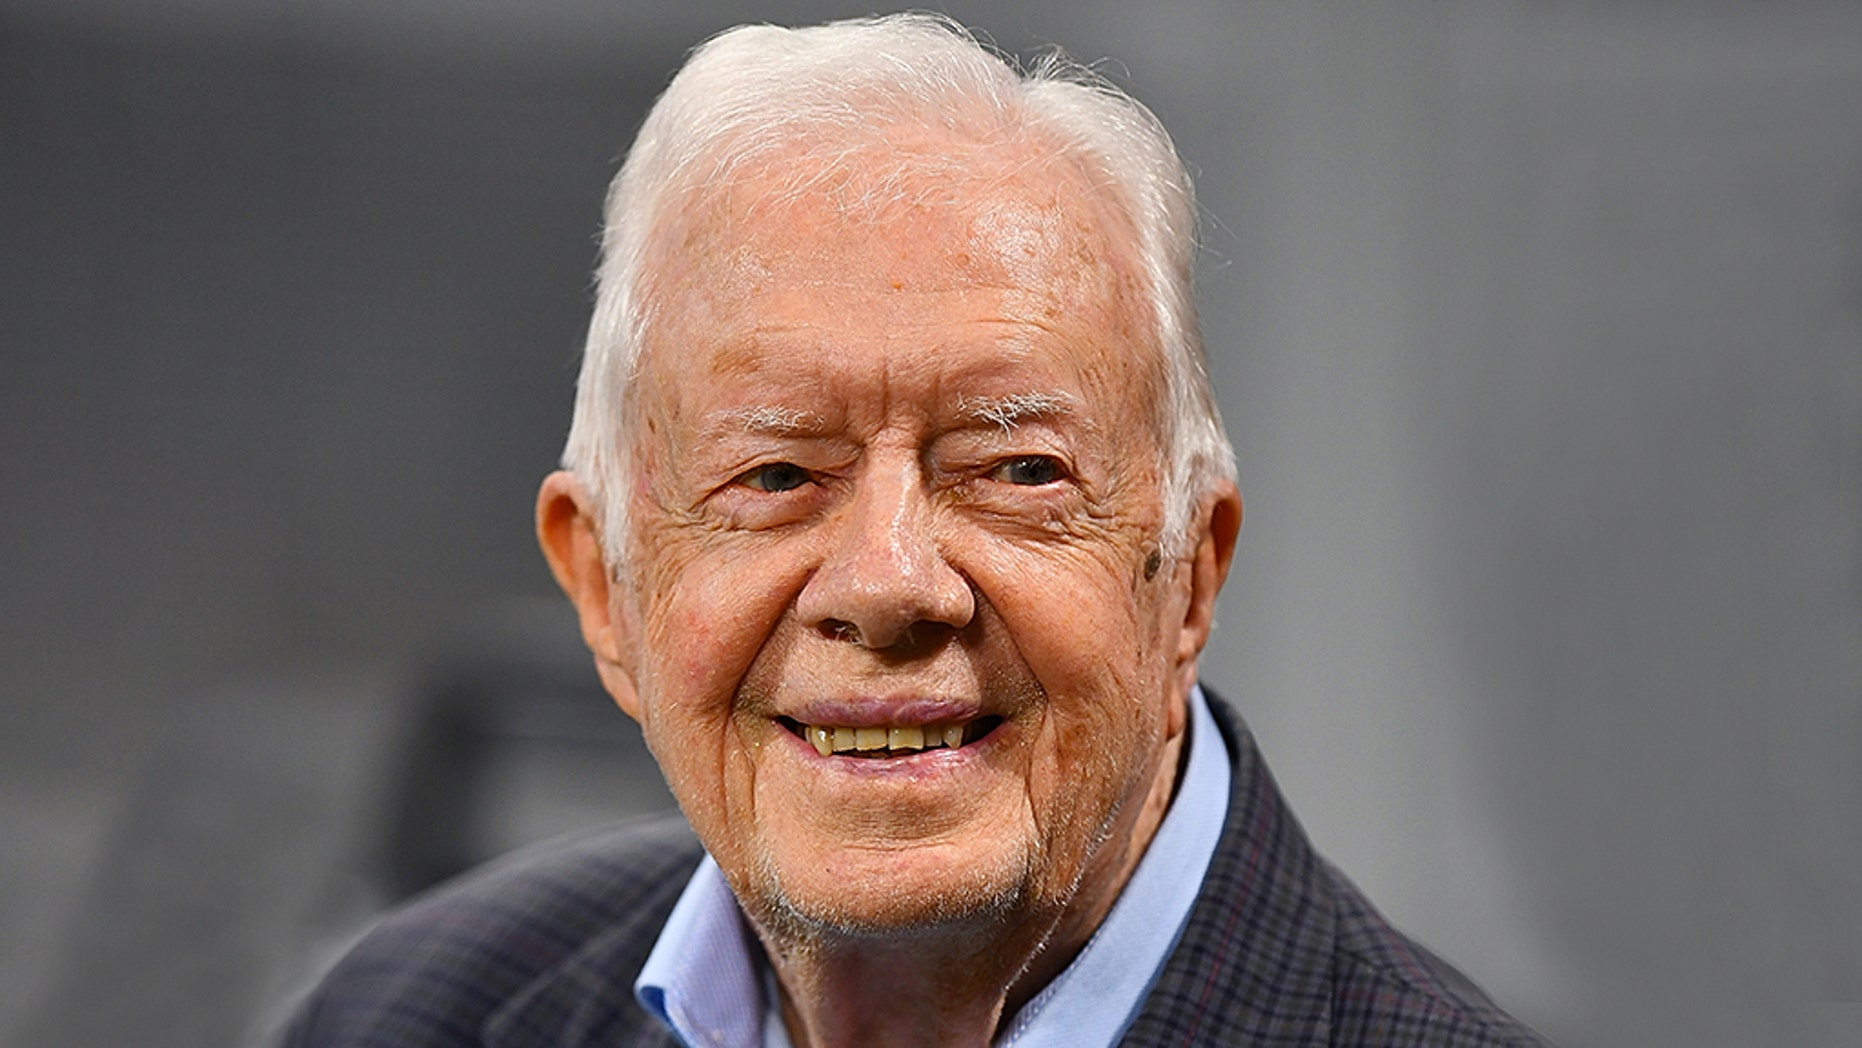 As of Thursday, March 21, Jimmy Carter became the country's oldest former living president at 94 years and 172 days old.